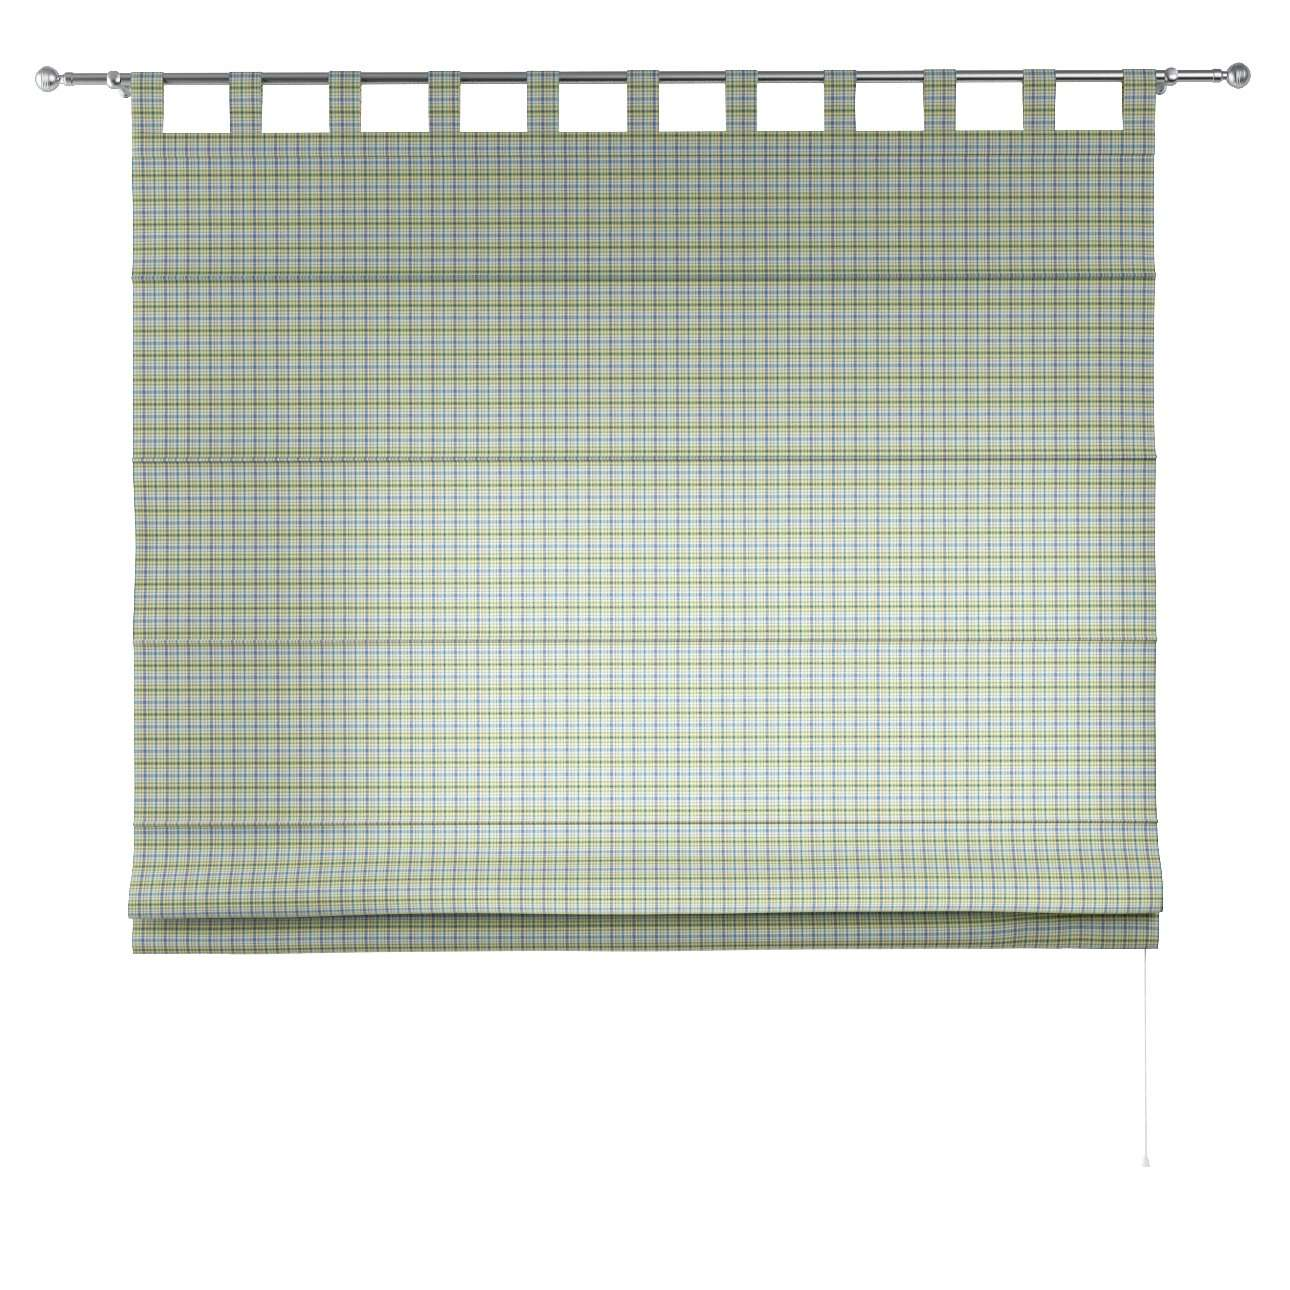 Verona tab top roman blind 80 x 170 cm (31.5 x 67 inch) in collection Bristol, fabric: 126-69